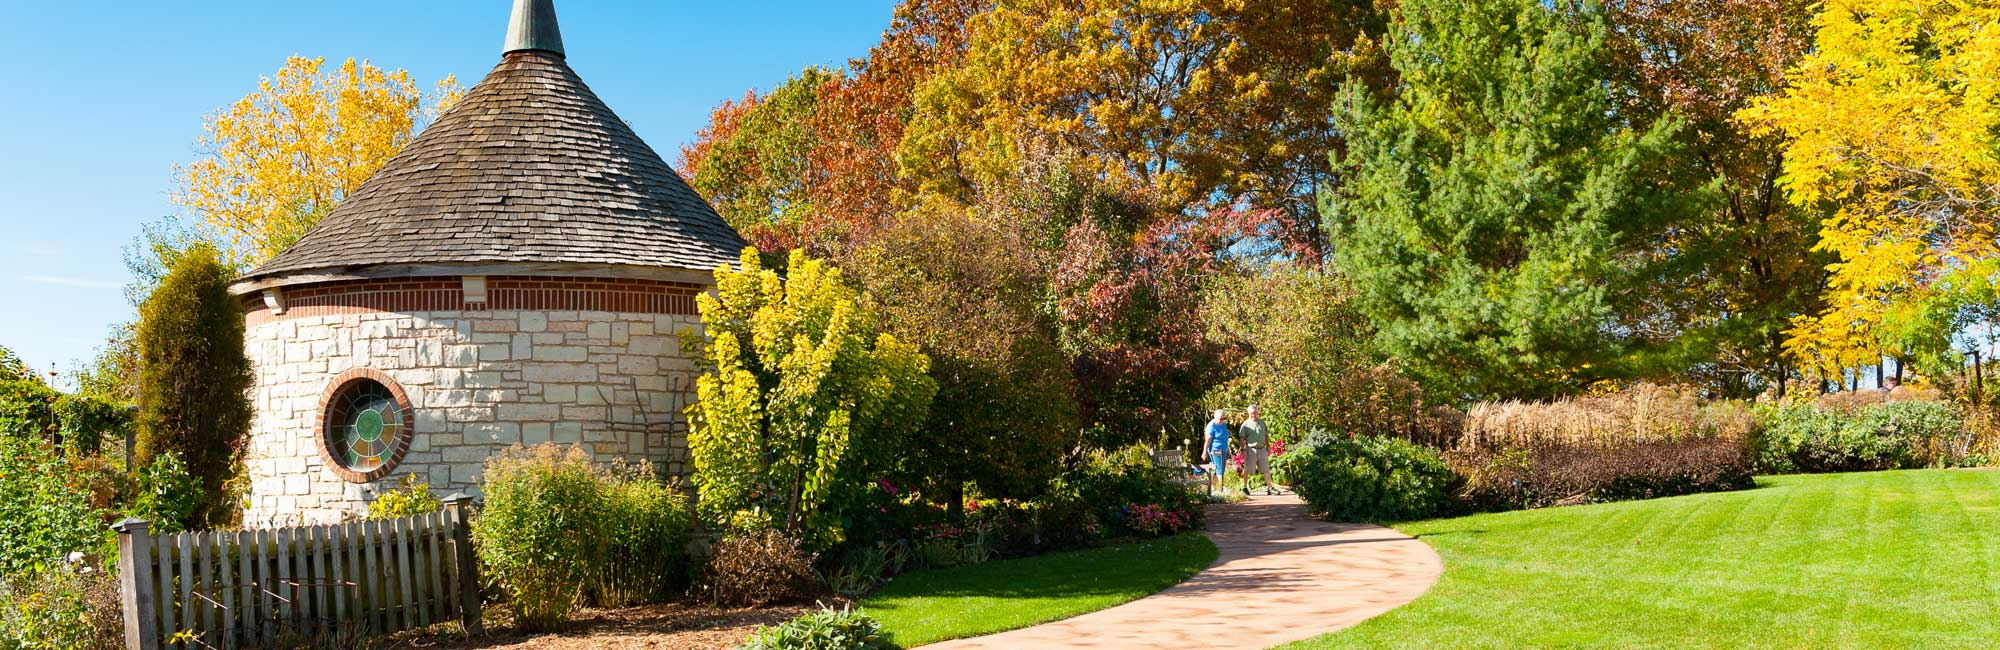 Enjoy a walk through the Garden with live classical music